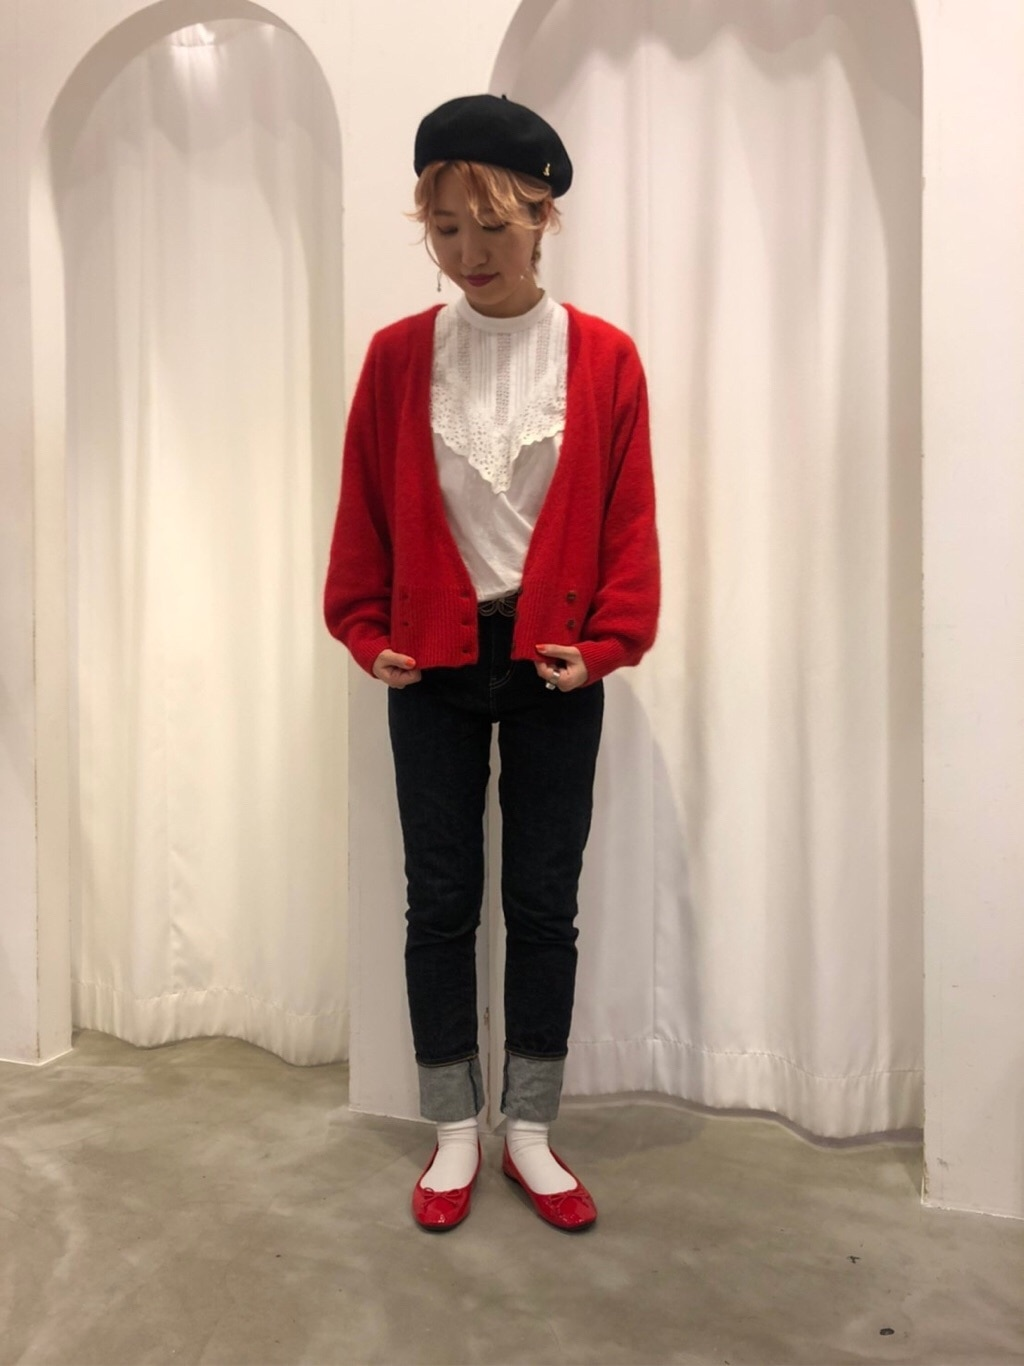 Dot and Stripes CHILD WOMAN 新宿ミロード 身長:160cm 2019.11.21